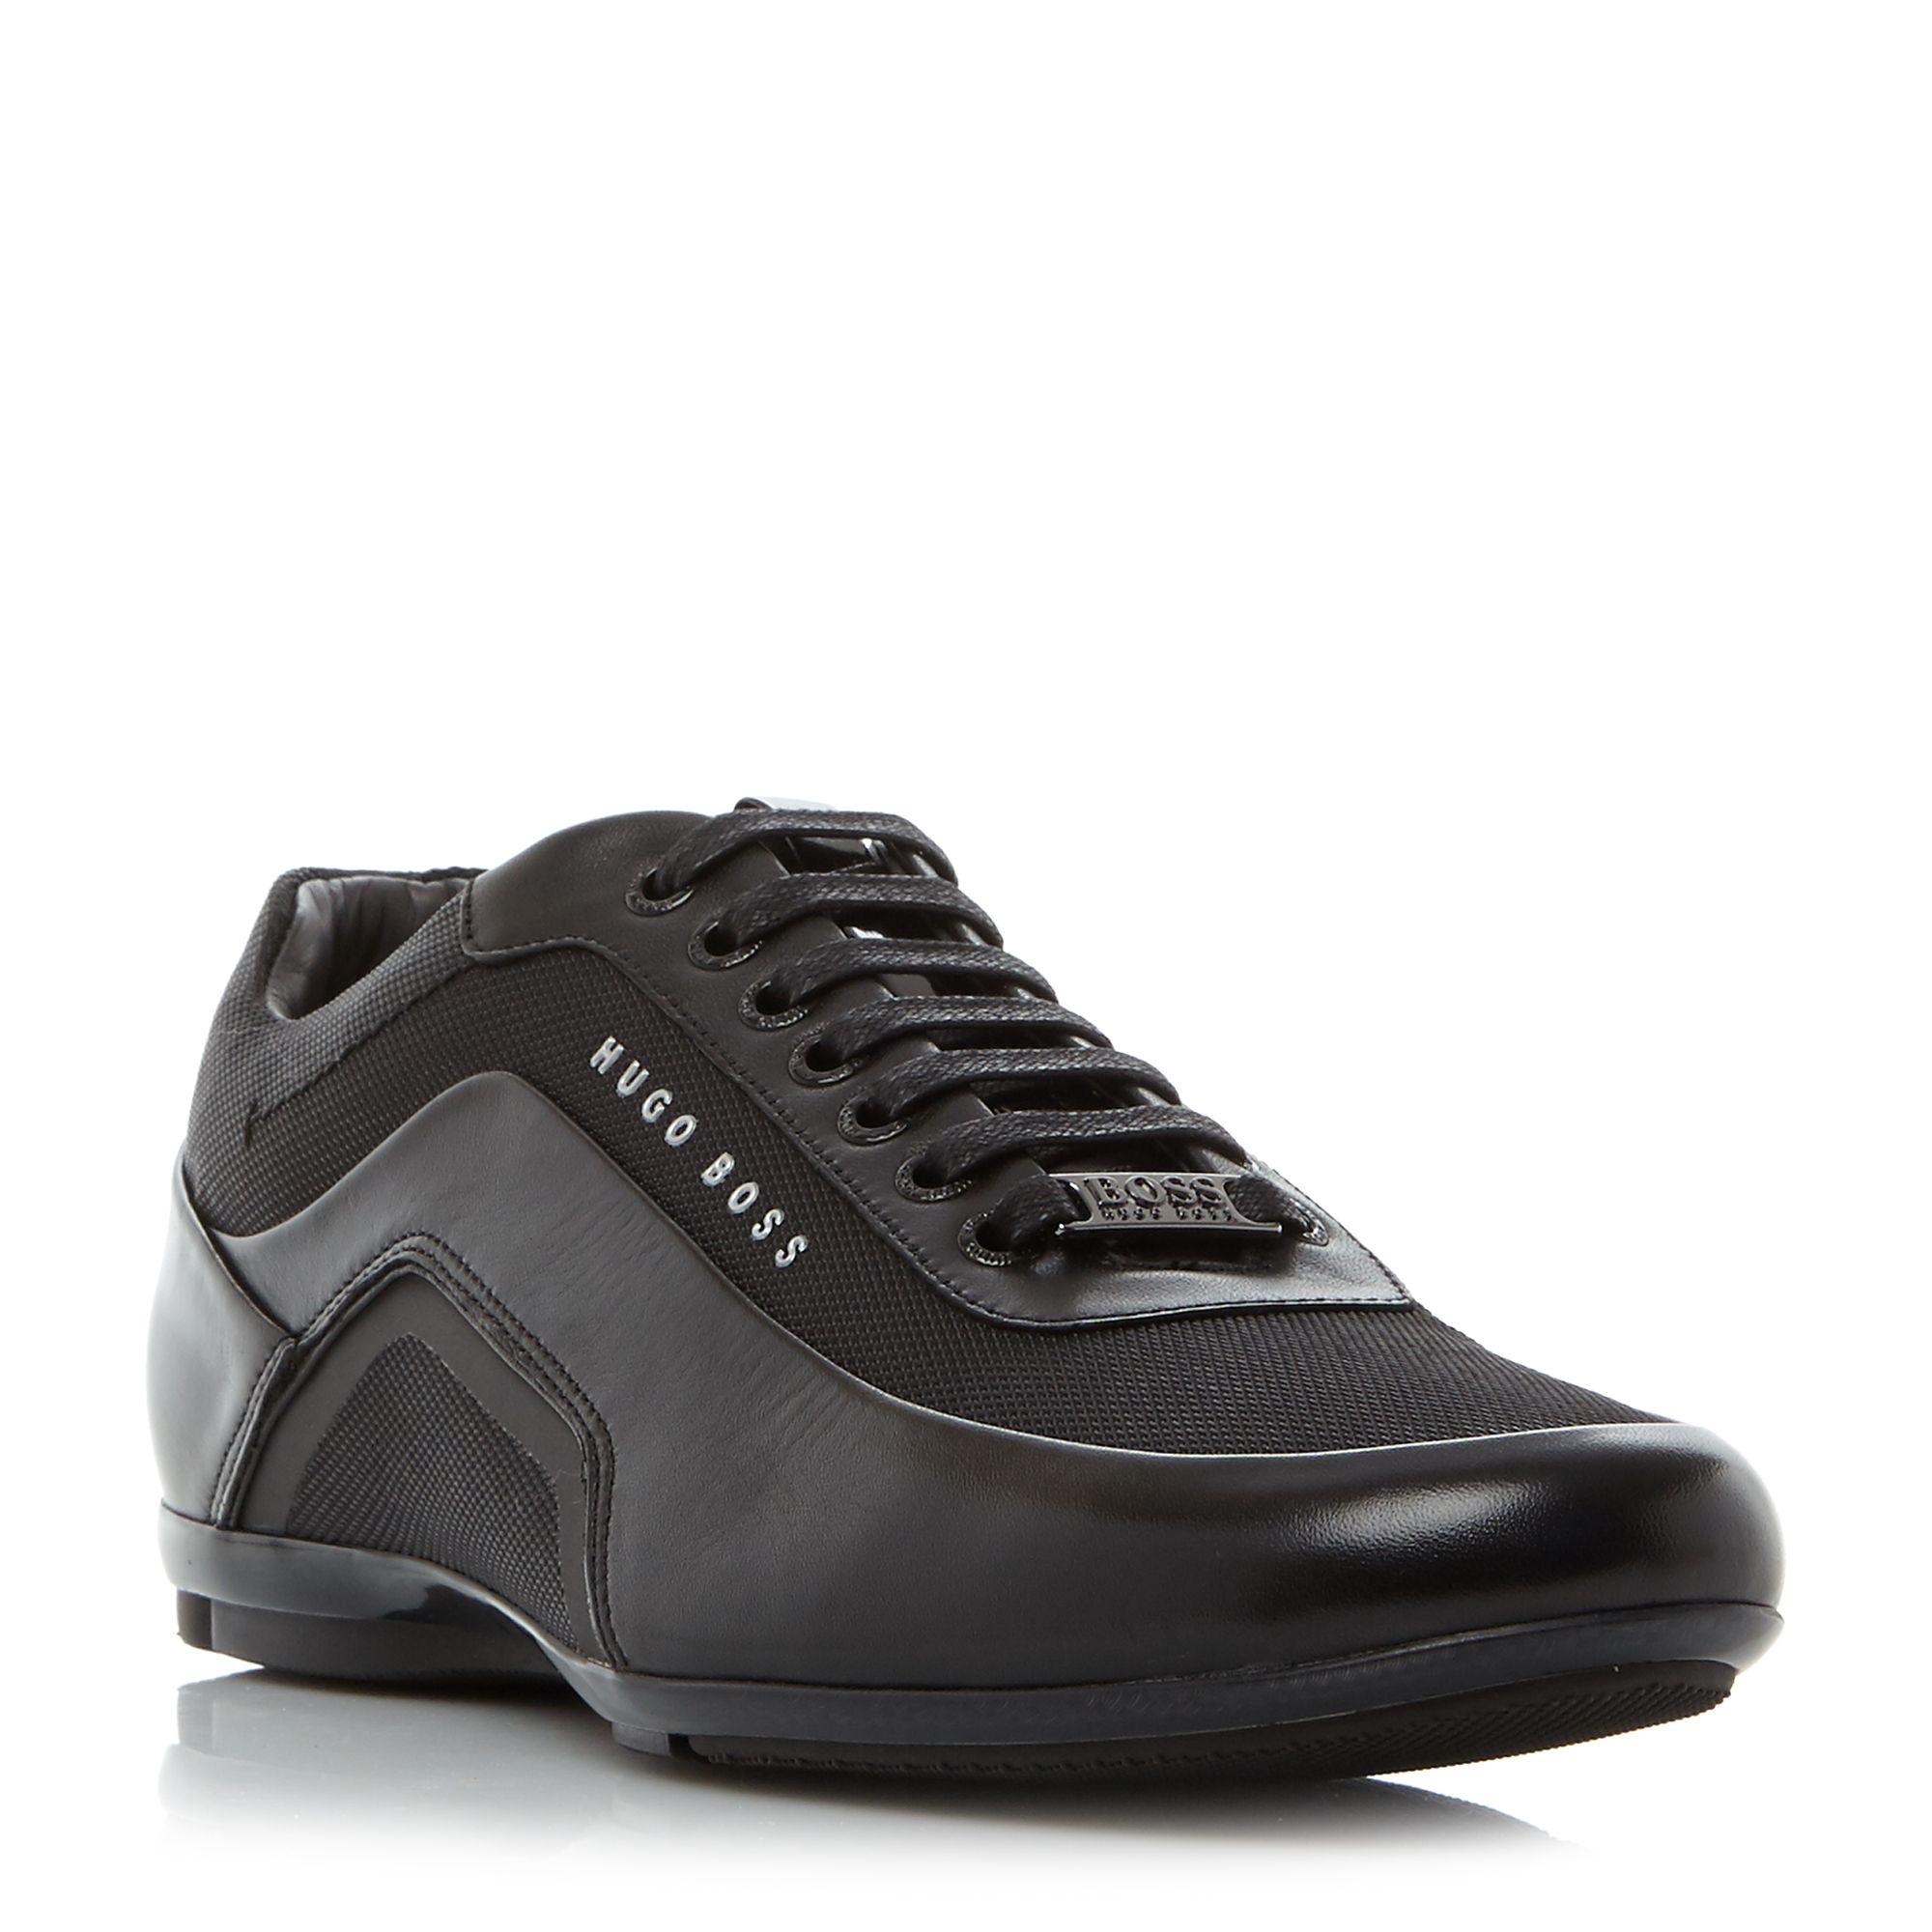 hugo boss sneaker damen hugo boss schuhe herren sale boss hugo boss arkansas low nylon sneaker. Black Bedroom Furniture Sets. Home Design Ideas